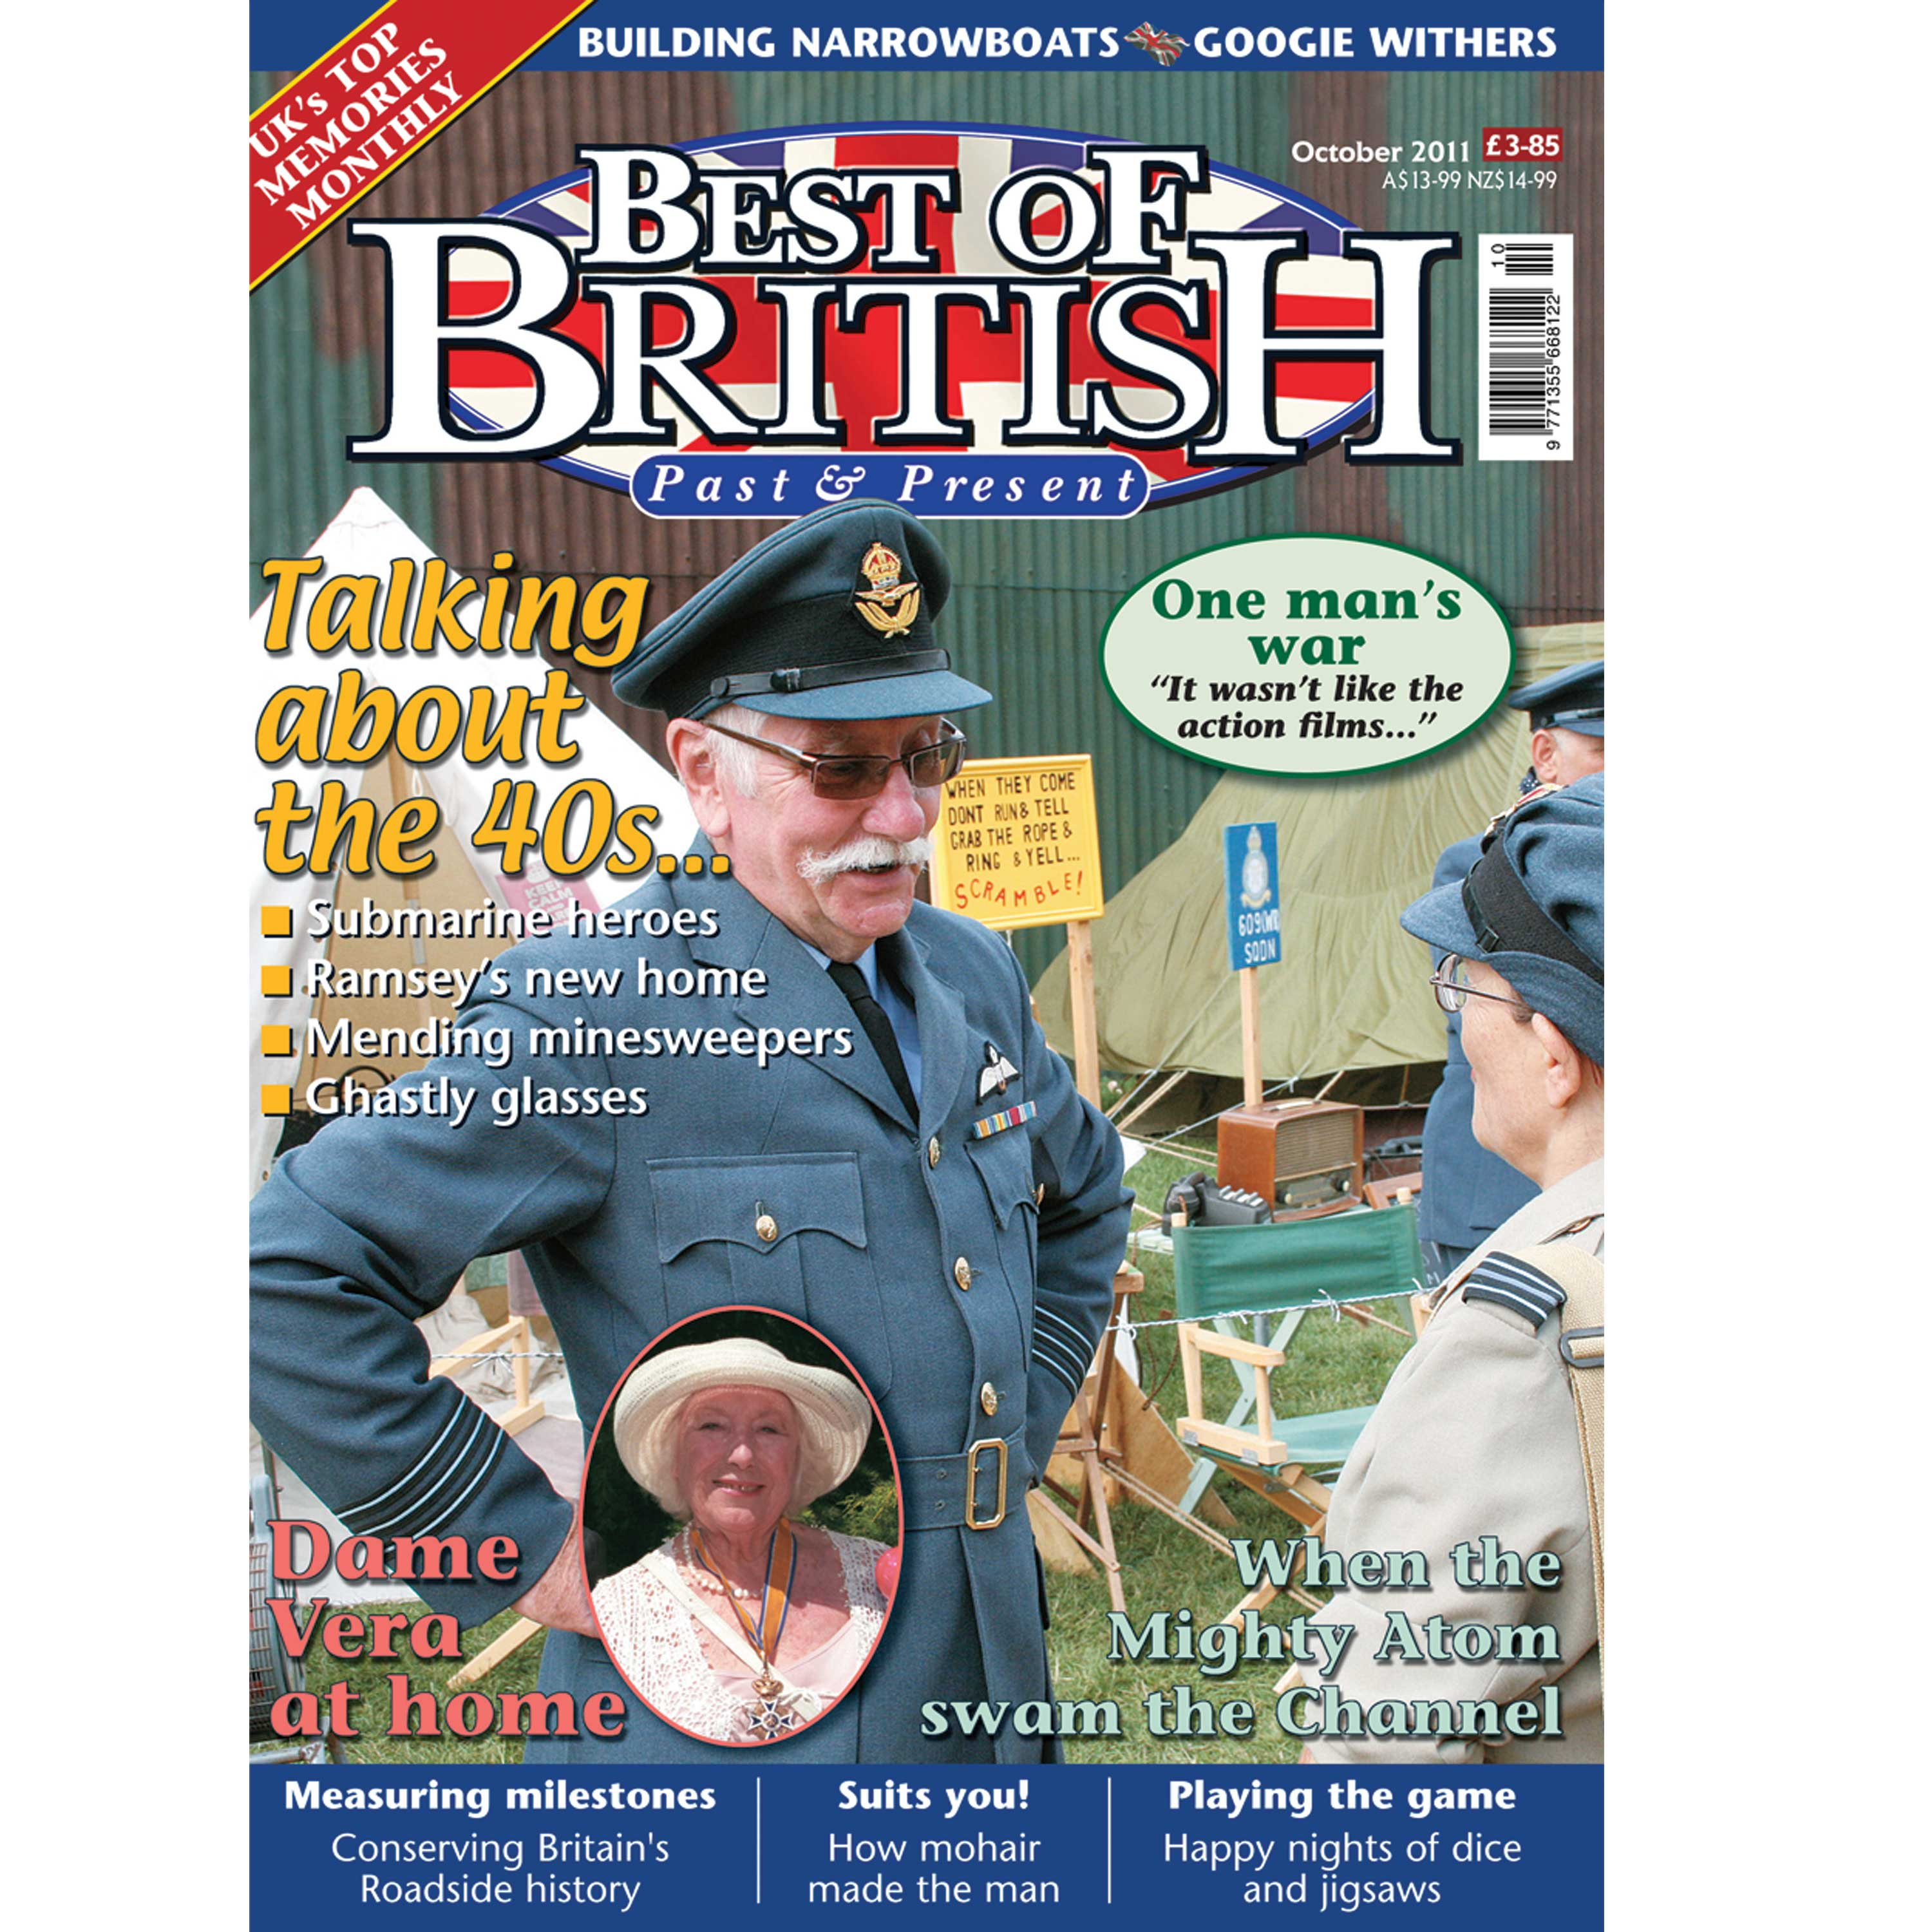 Issue 183 - OCT 2011